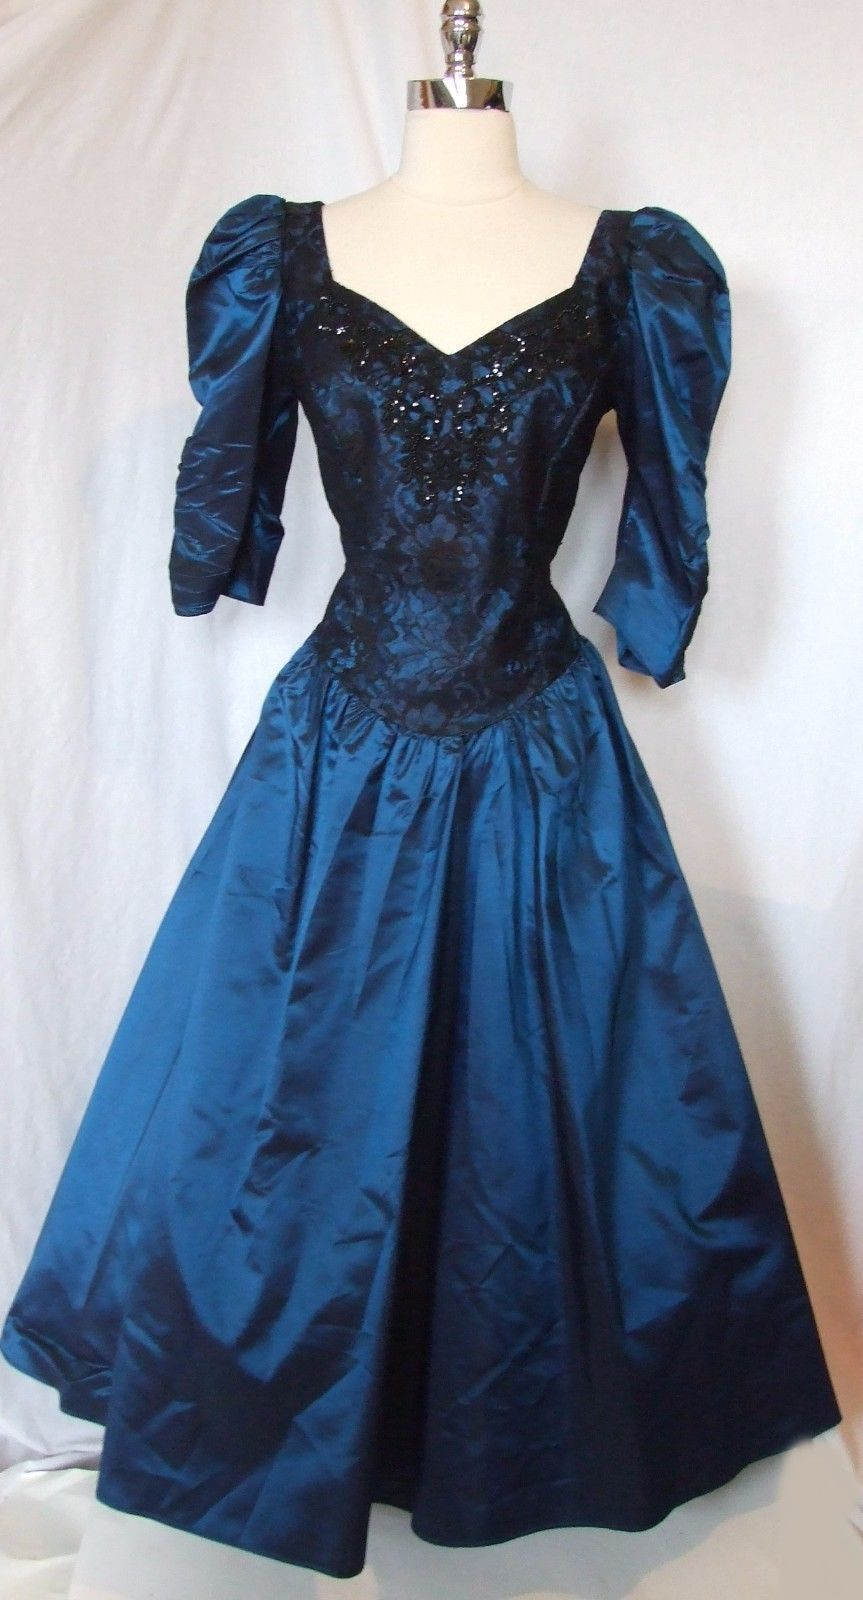 Chic vintage s lace taffeta puff sleeve irridescent prom party